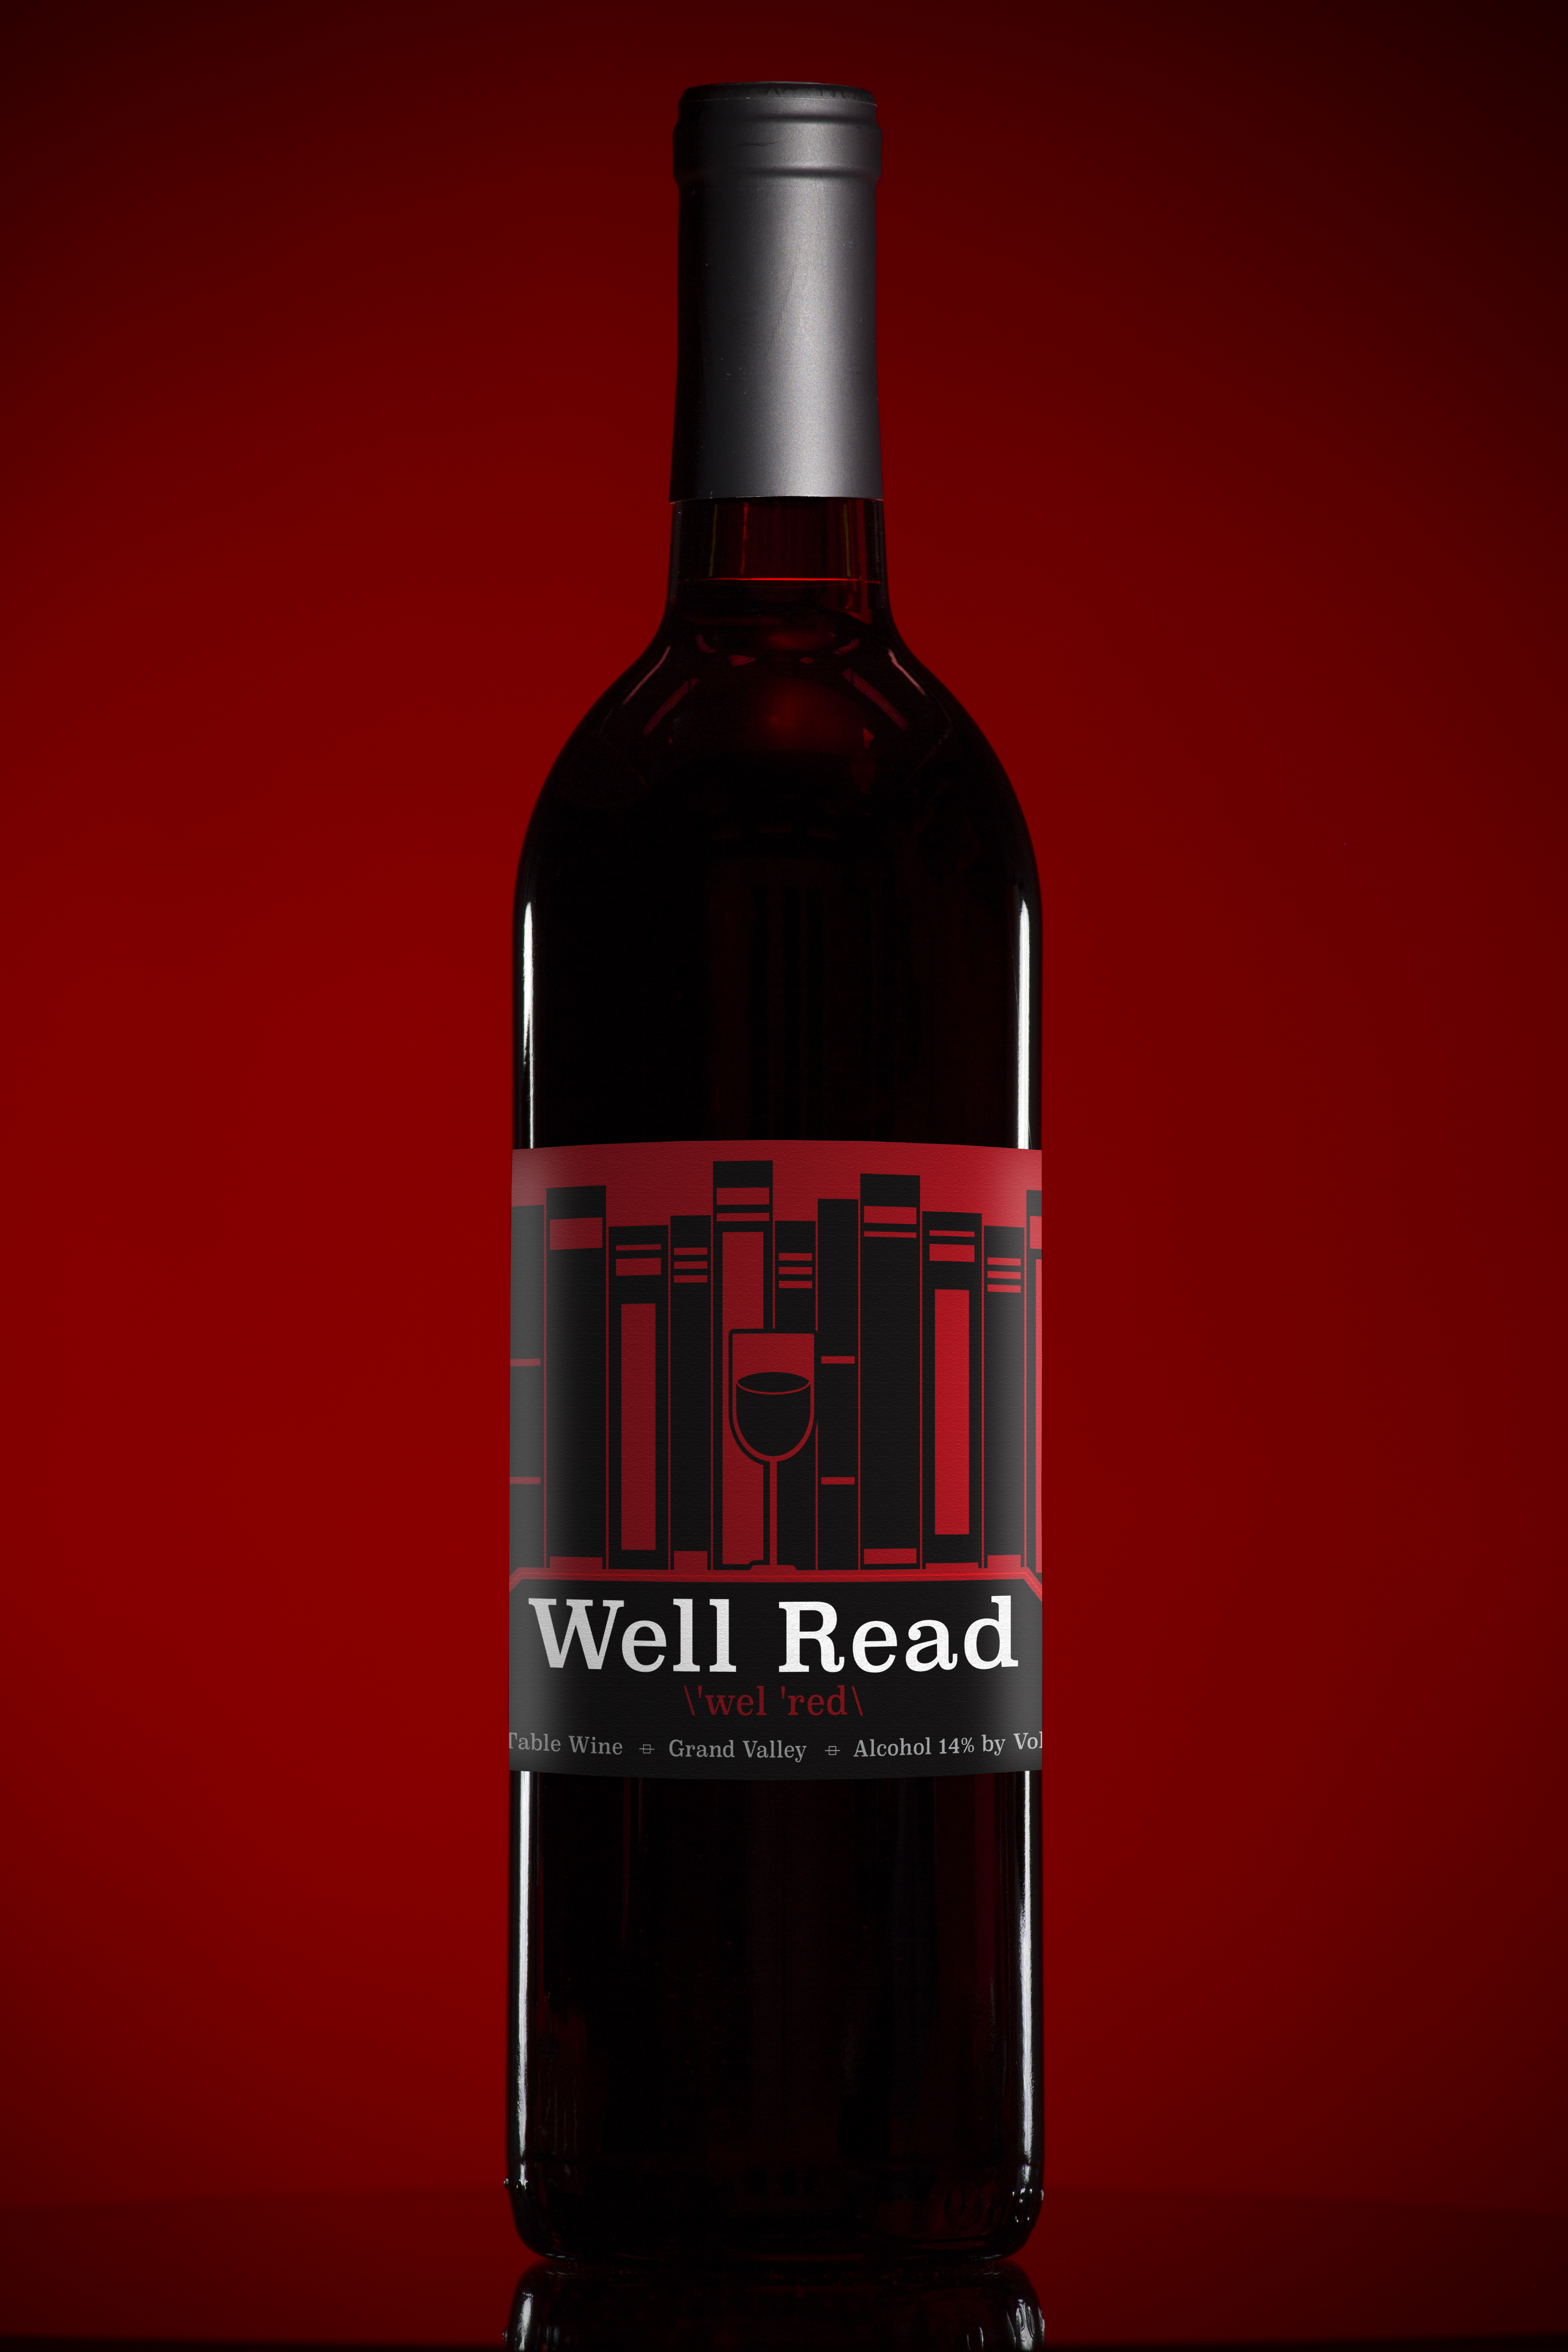 Well Read Library Wine